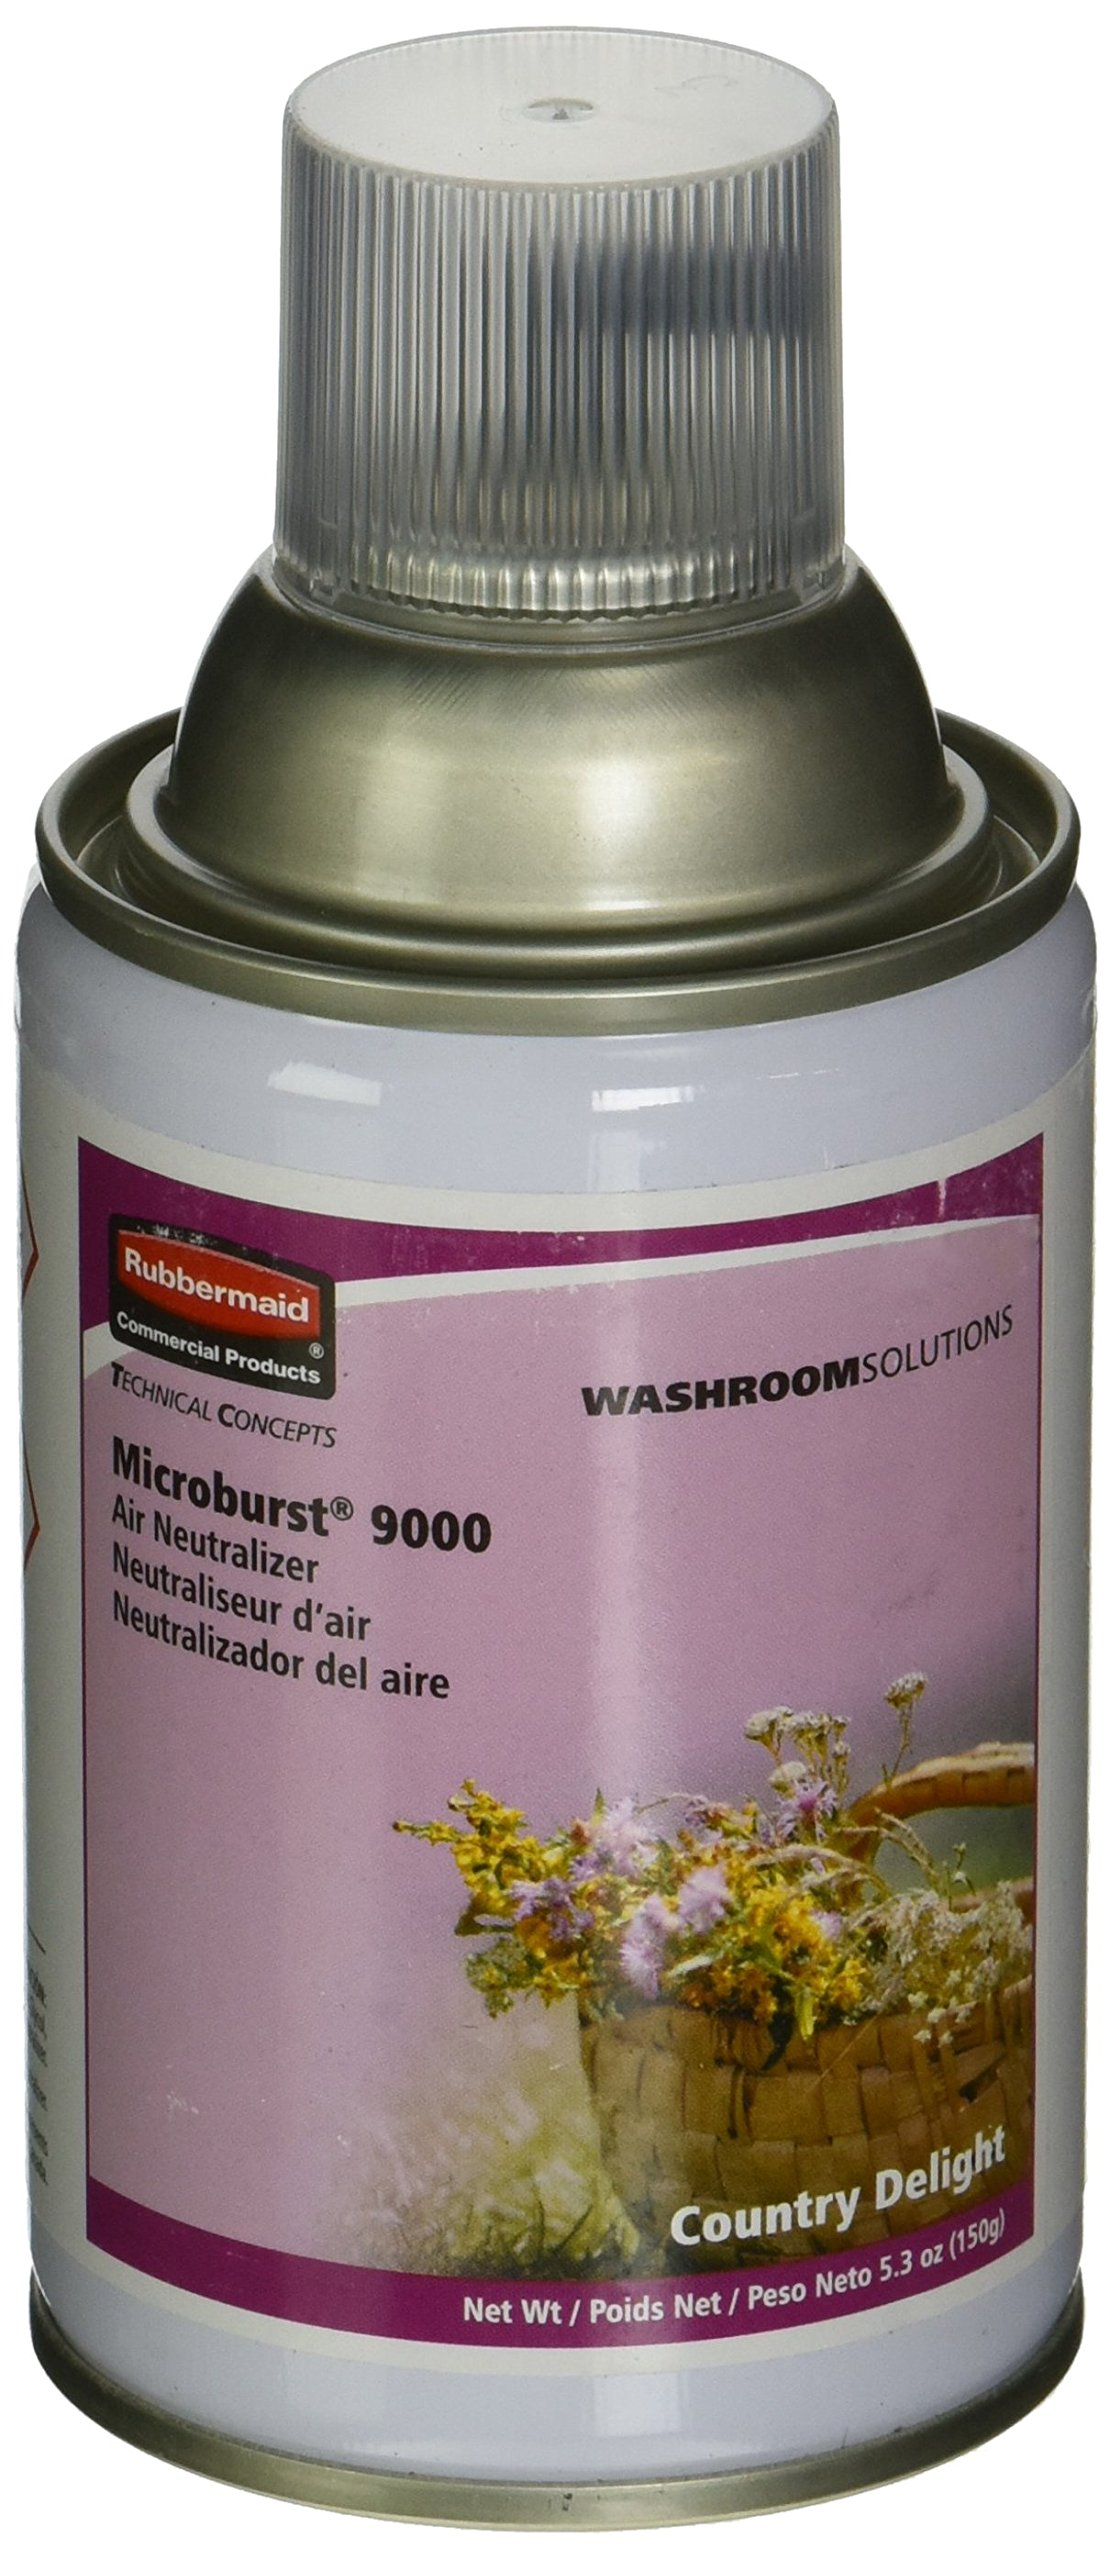 rubbermaid microburst 9000 instructions